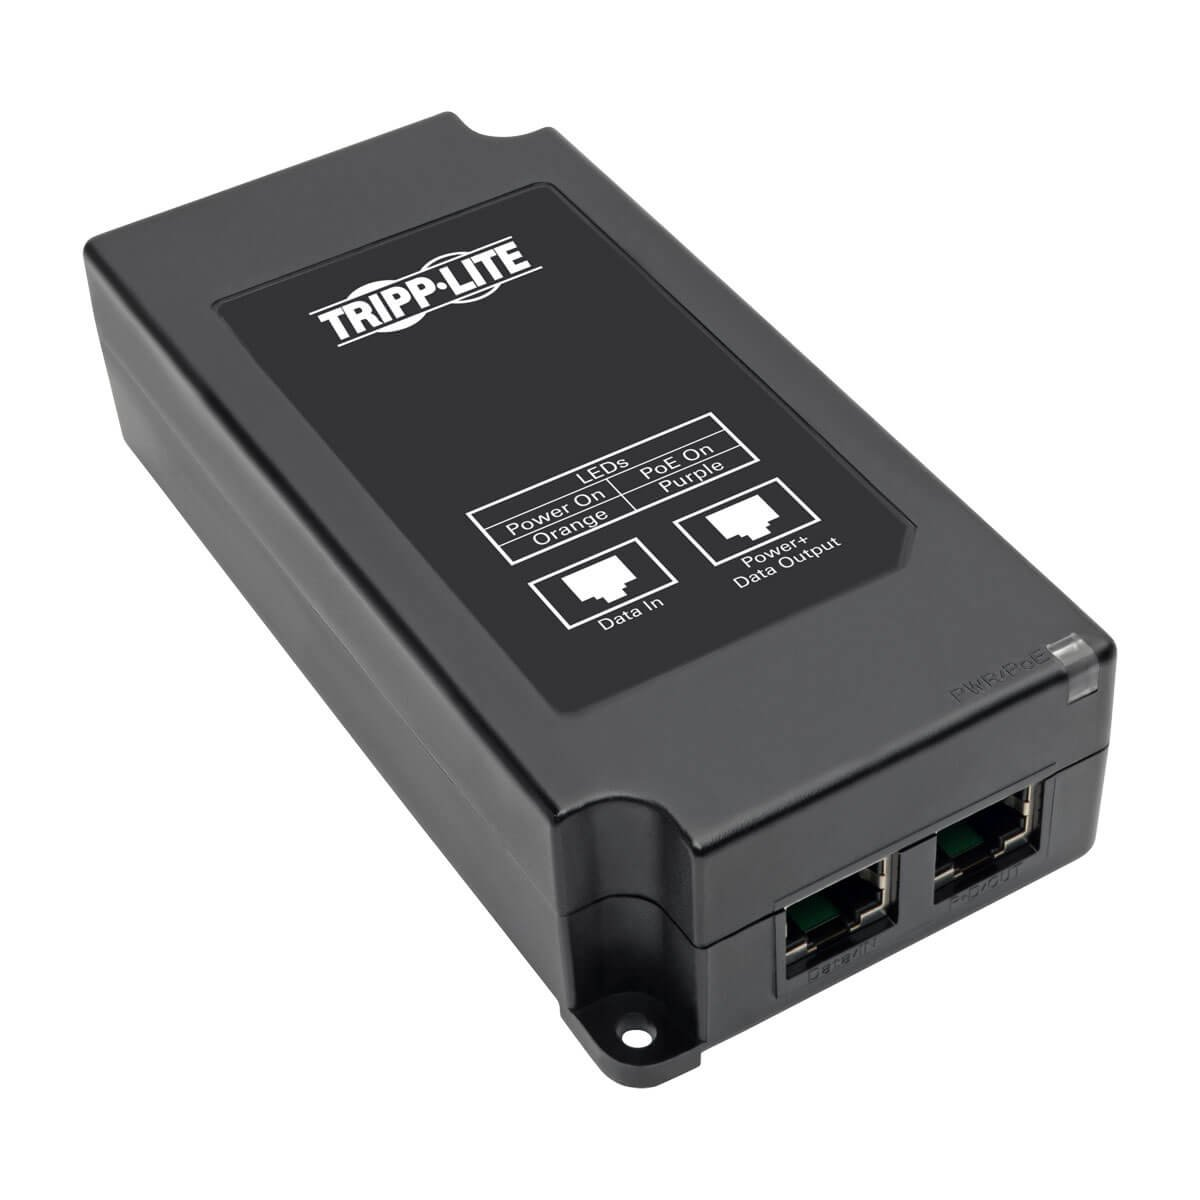 Tripp Lite Gigabit PoE+ Midspan Active Injector - IEEE 802.3at / 802.3af, 30W, 1 Port, Power Over Ethernet (NPOE-30W-1G)